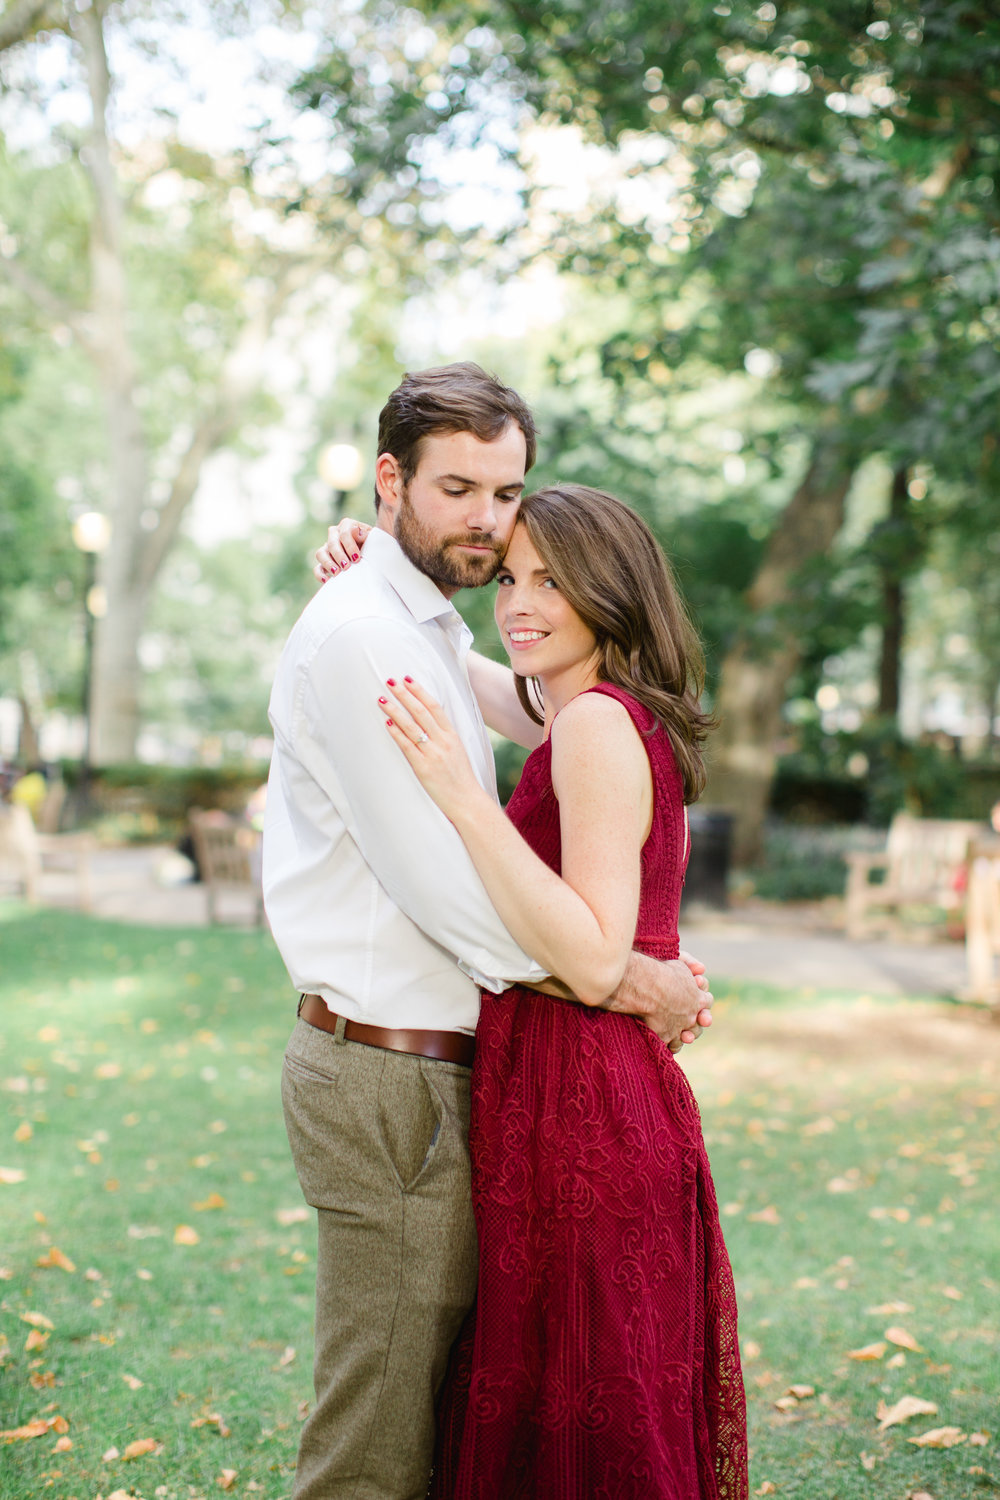 Downtown Philadelphia PA Engagement Session Photos_JDP-5142.jpg